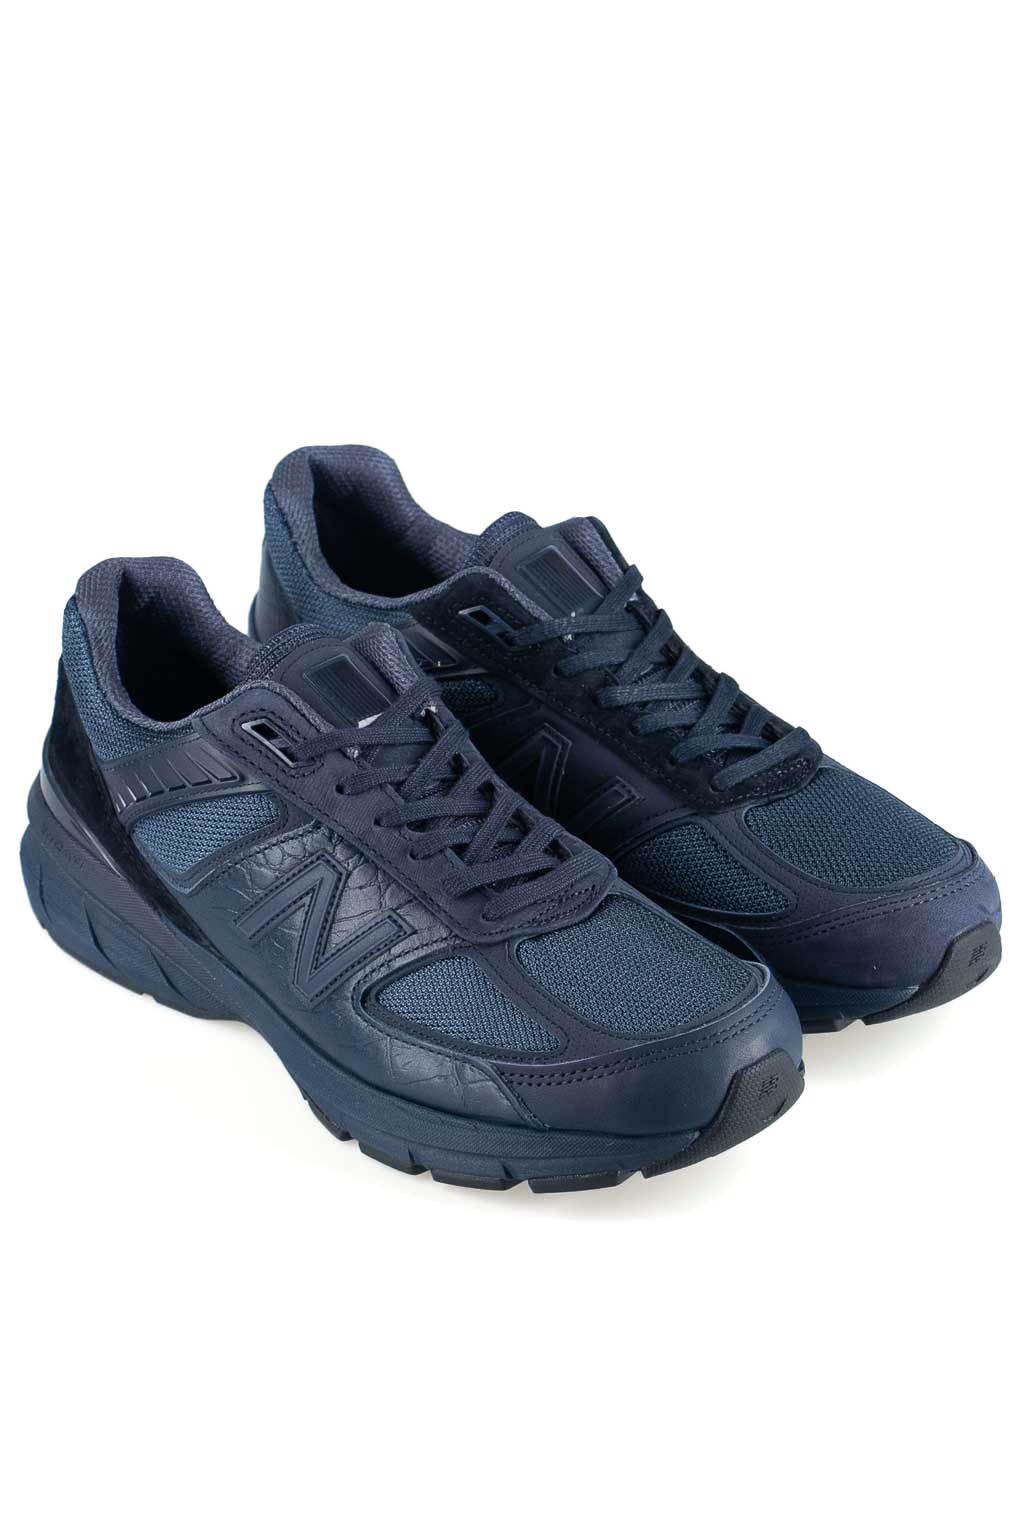 New Balance M990EGN5 by Engineered Garments - Navy